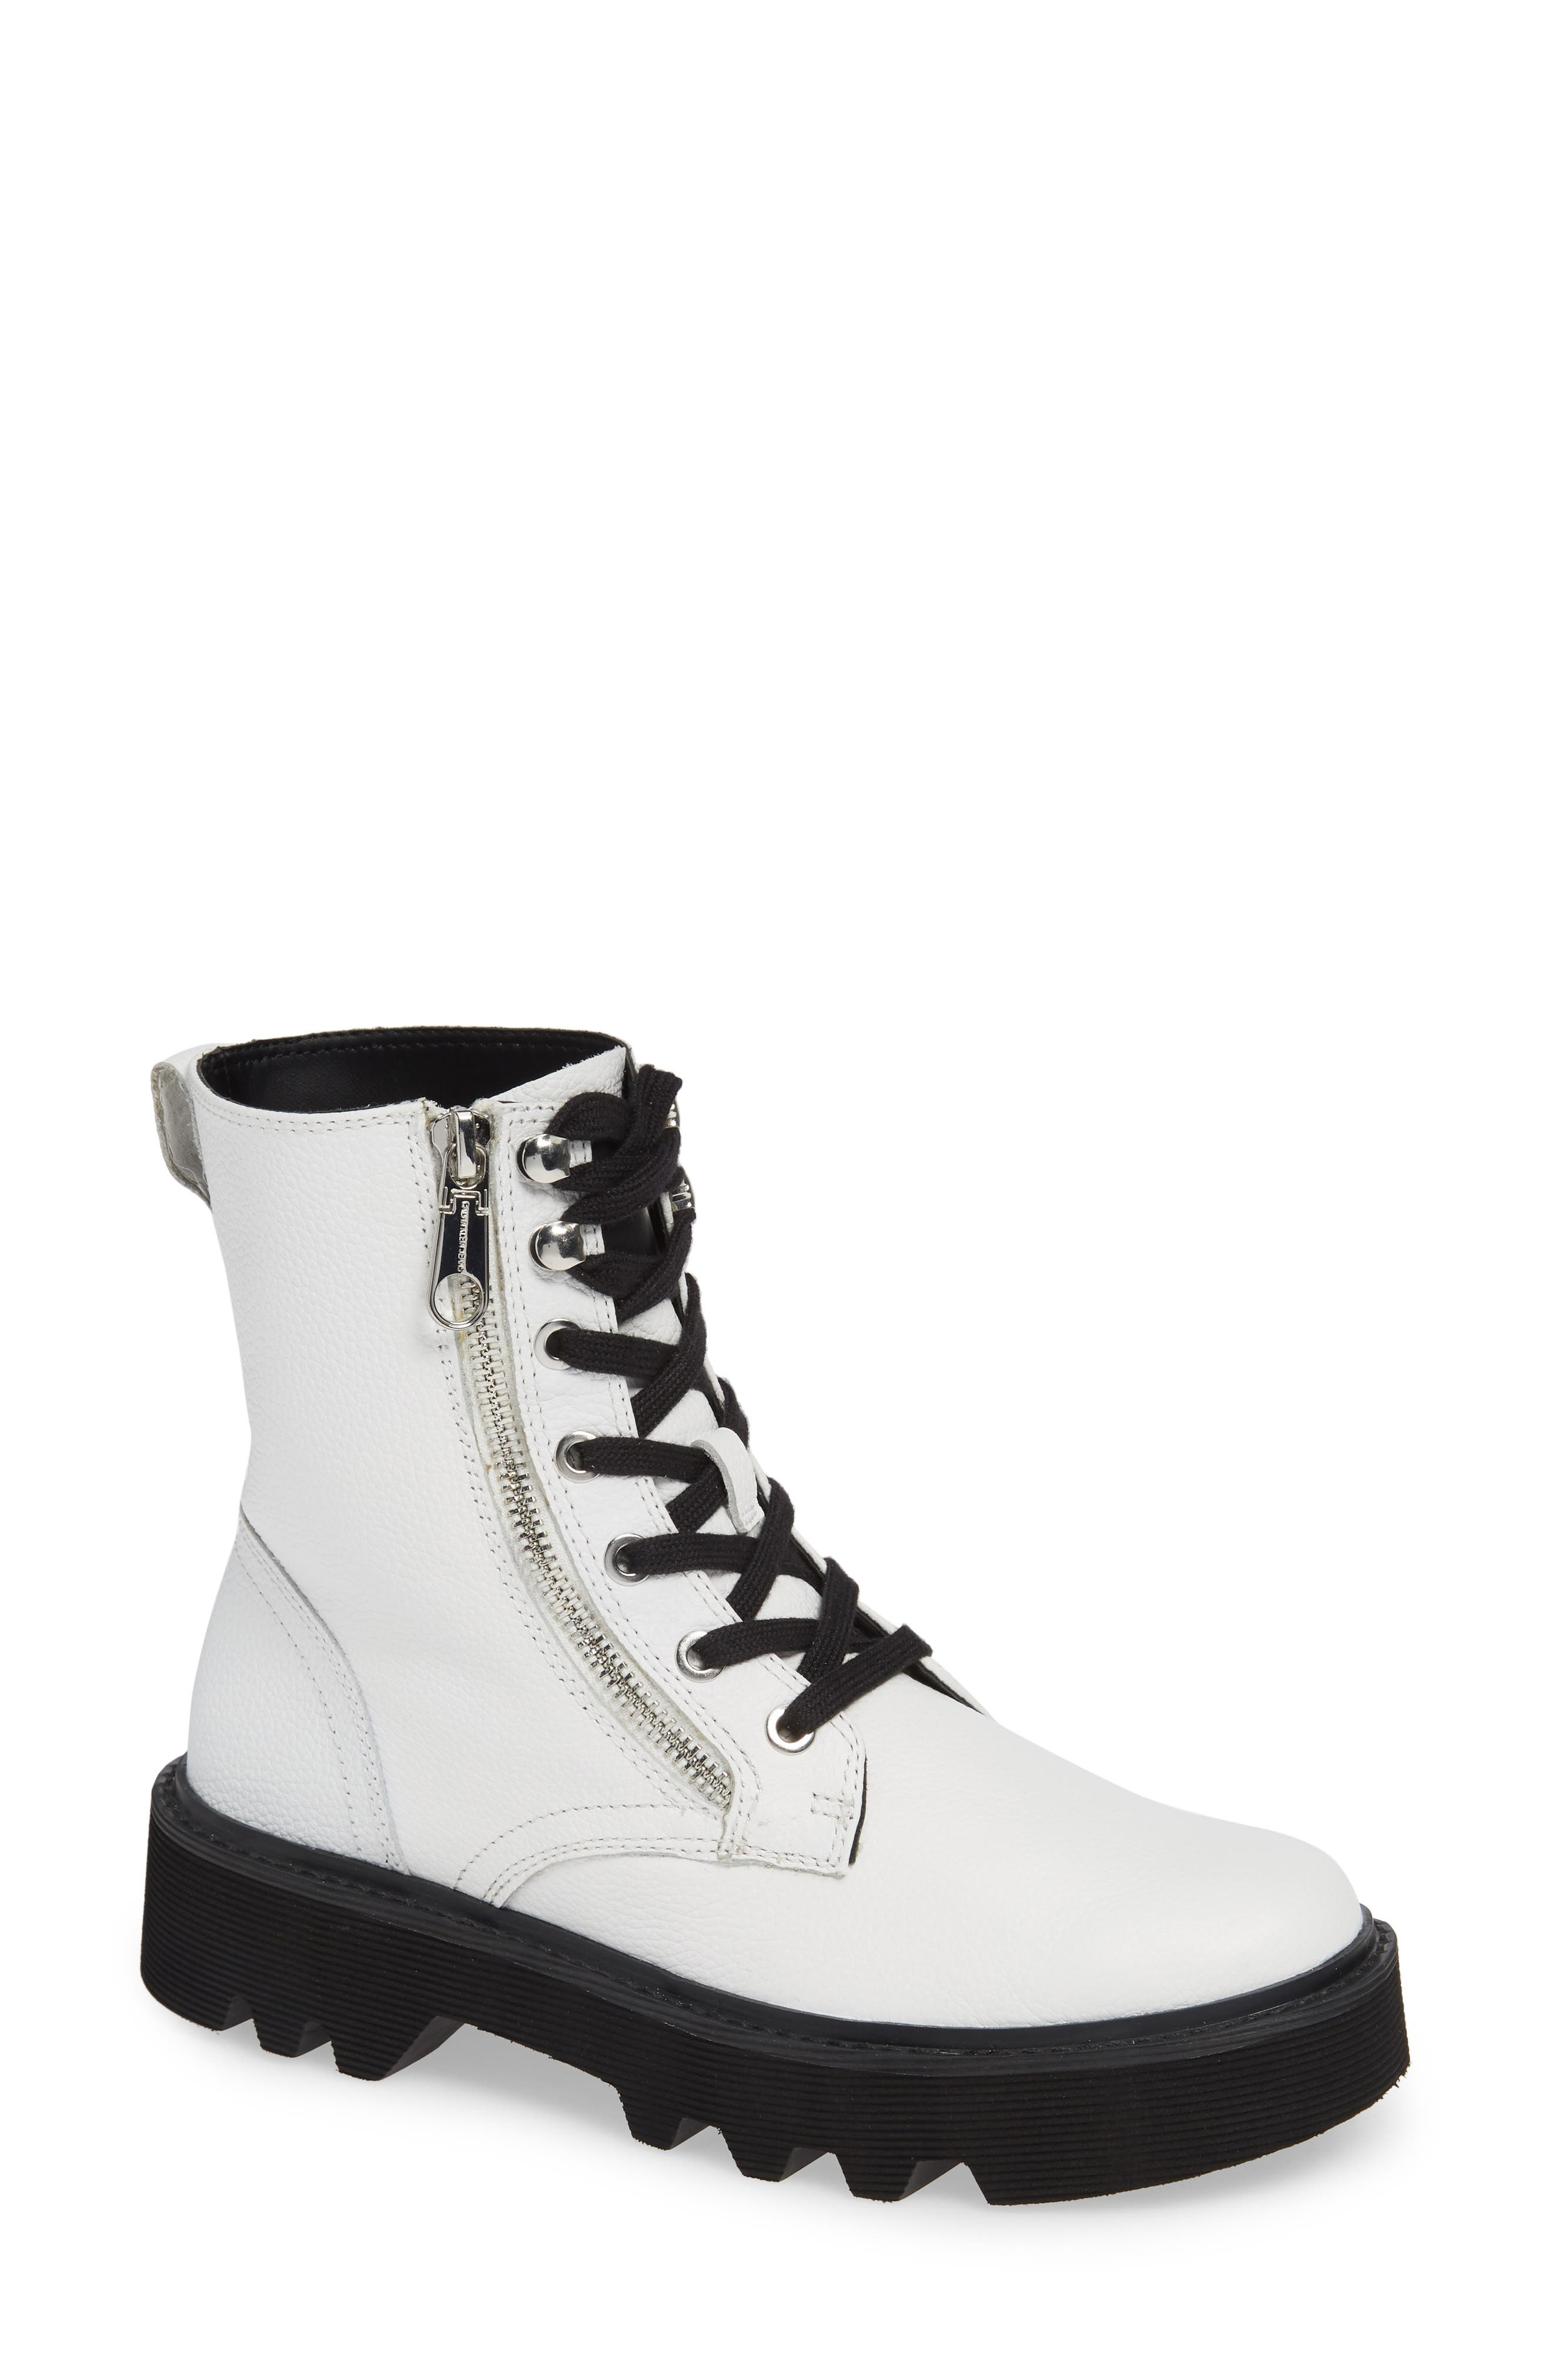 CALVIN KLEIN JEANS Diahne Combat Boot, Main, color, WHITE LEATHER